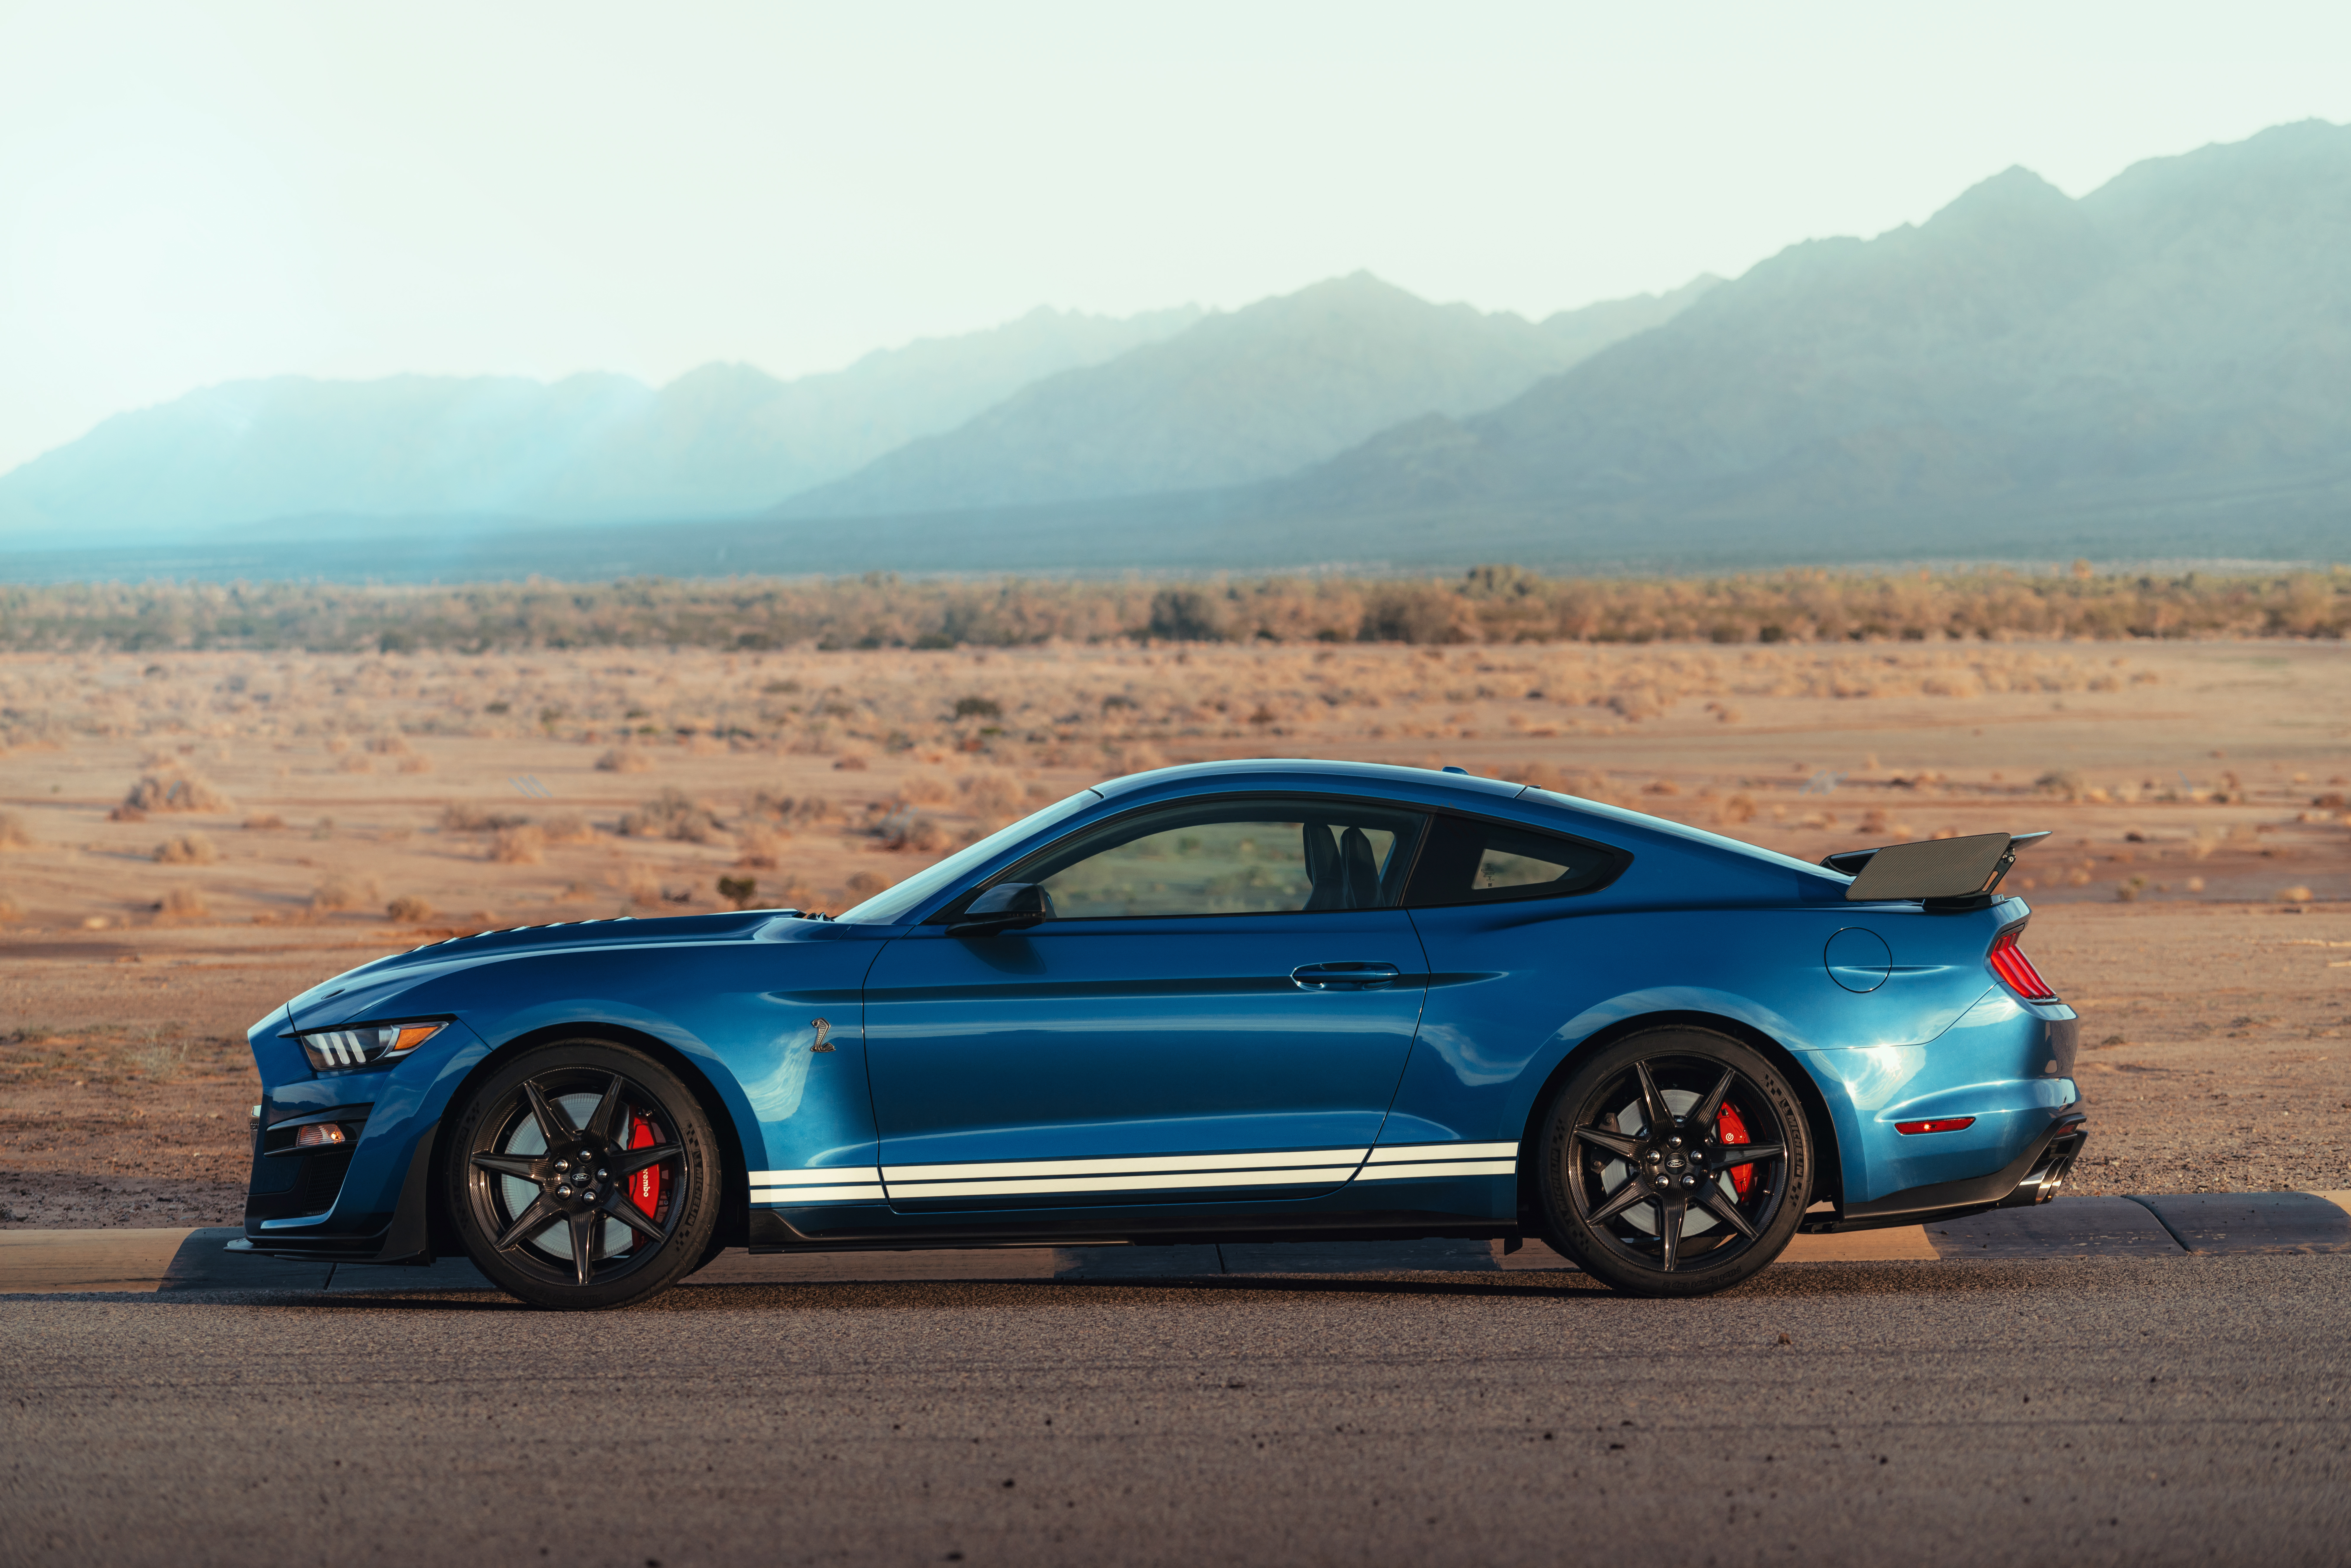 The 2020 Shelby GT500 is the fastest street-legal Mustang EVER